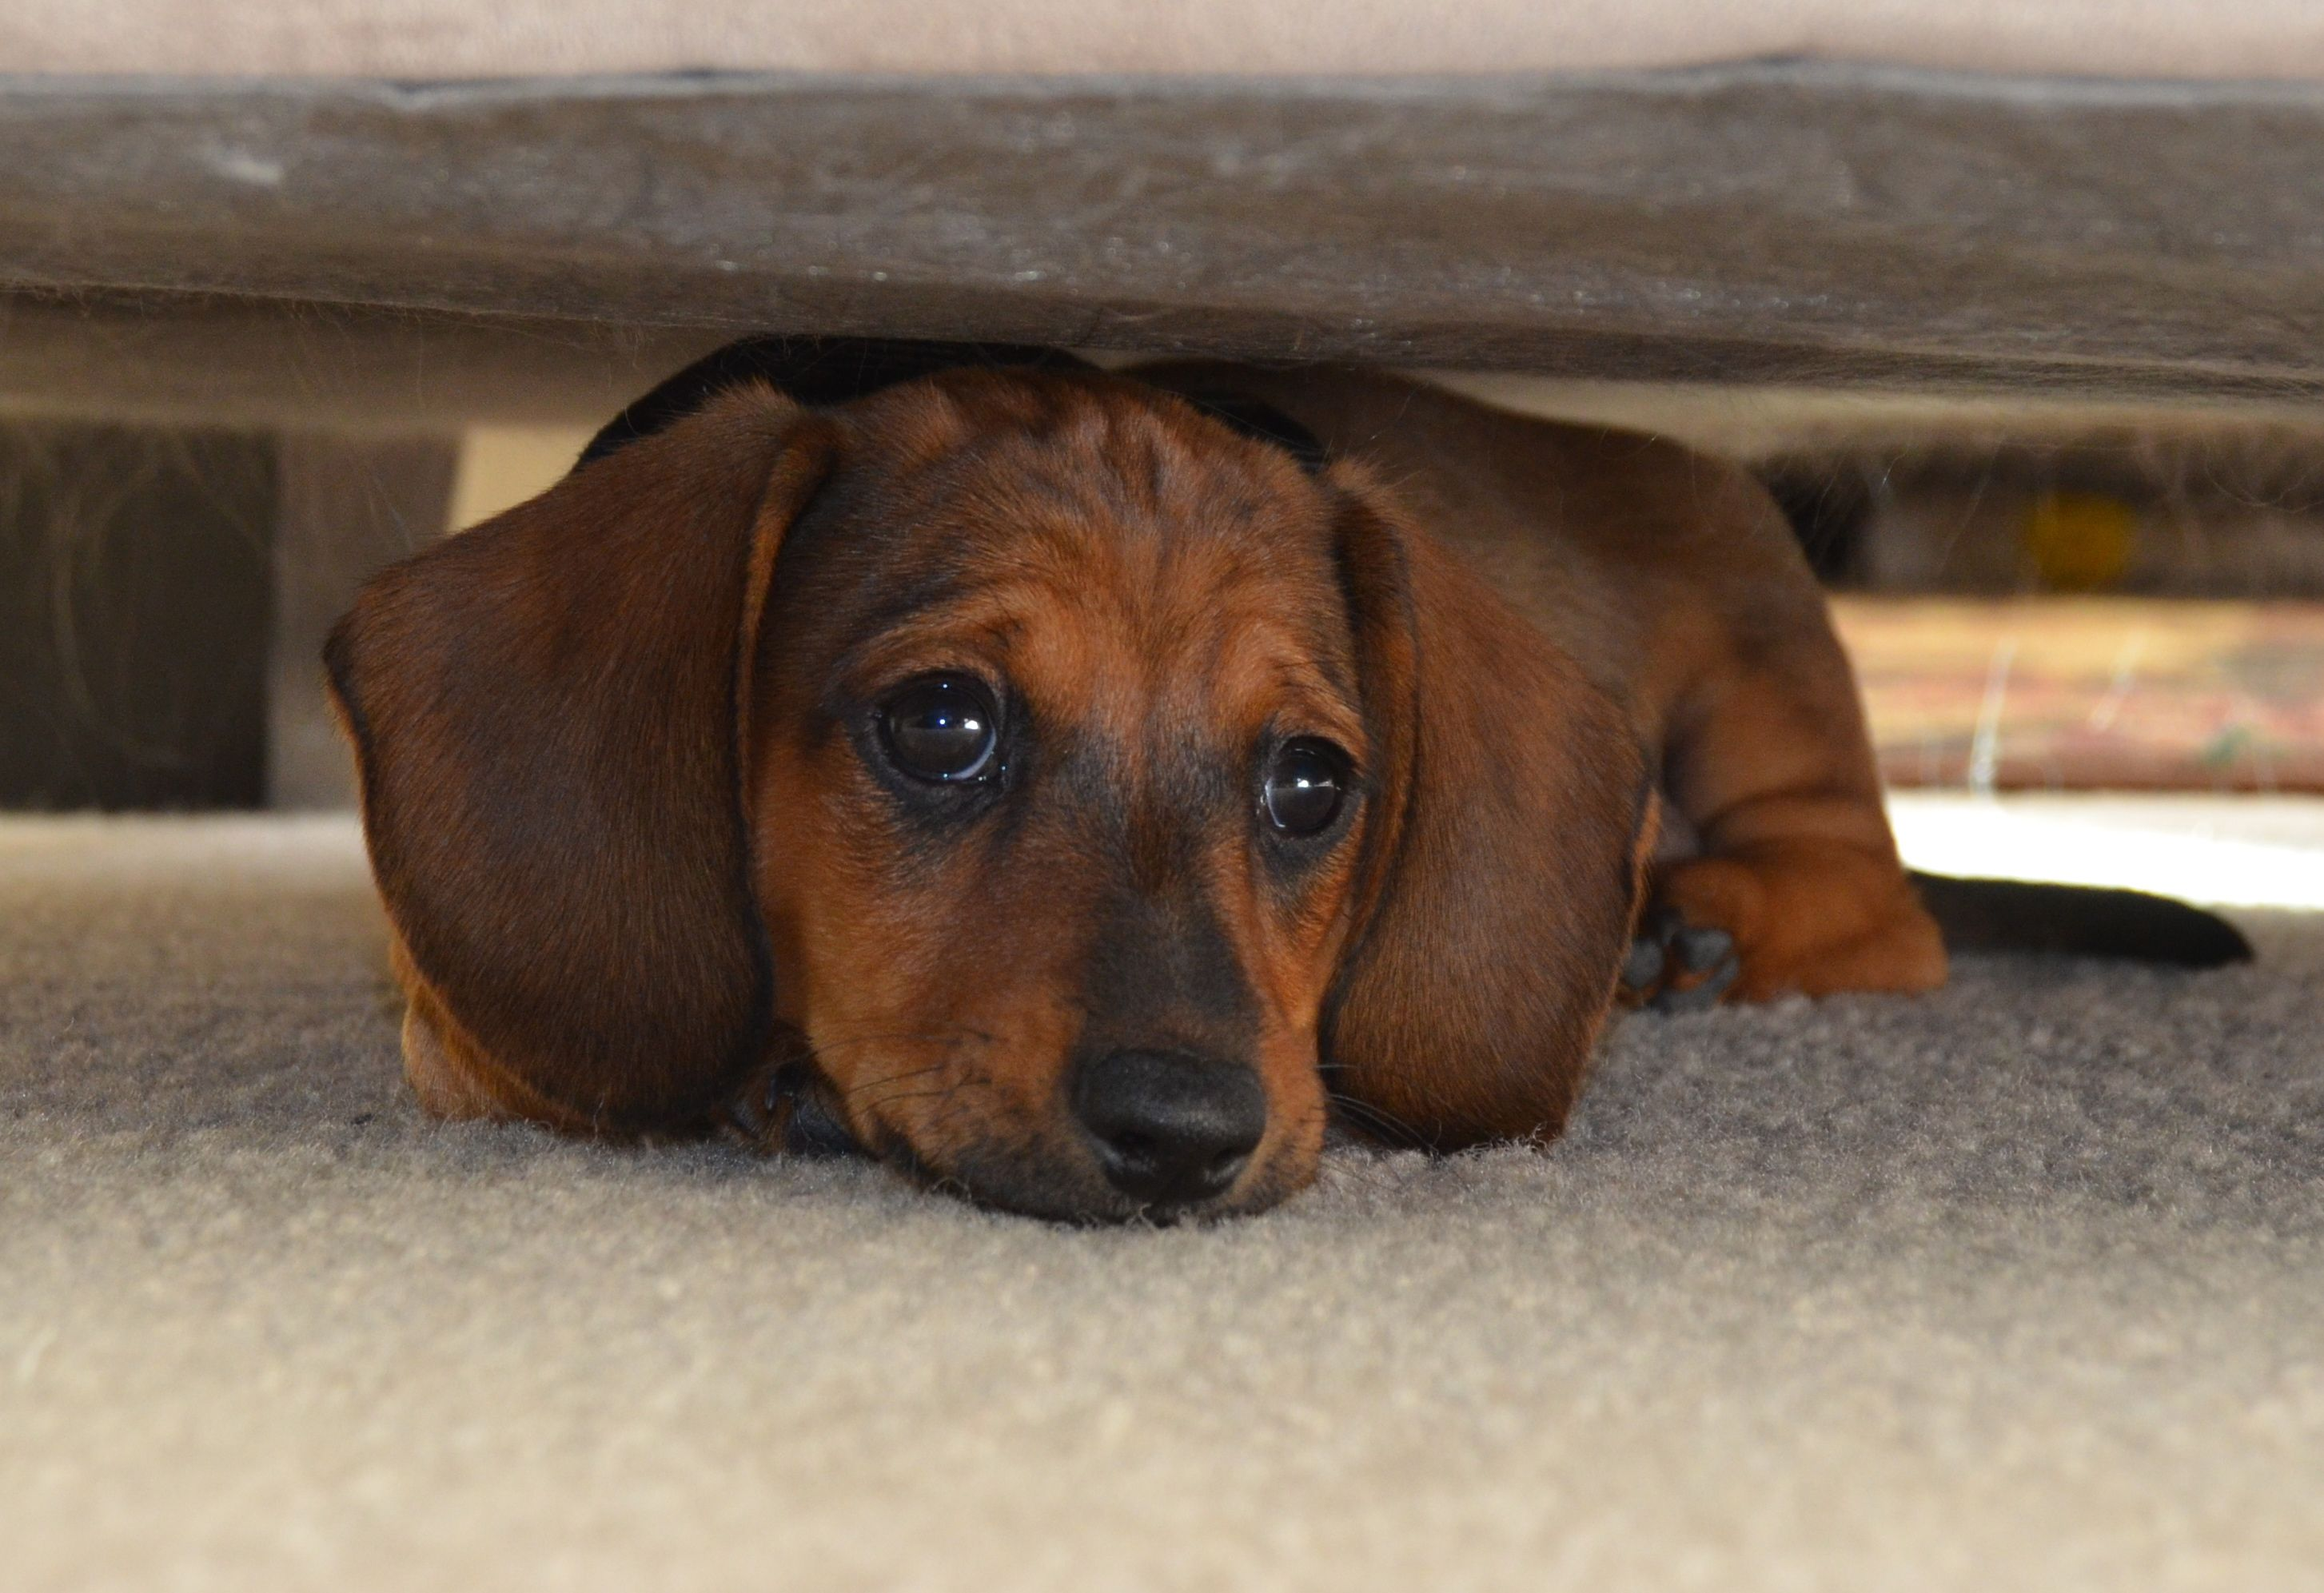 Miniature Dachshund Puppy 8 Weeks Old And Full Of Energy This